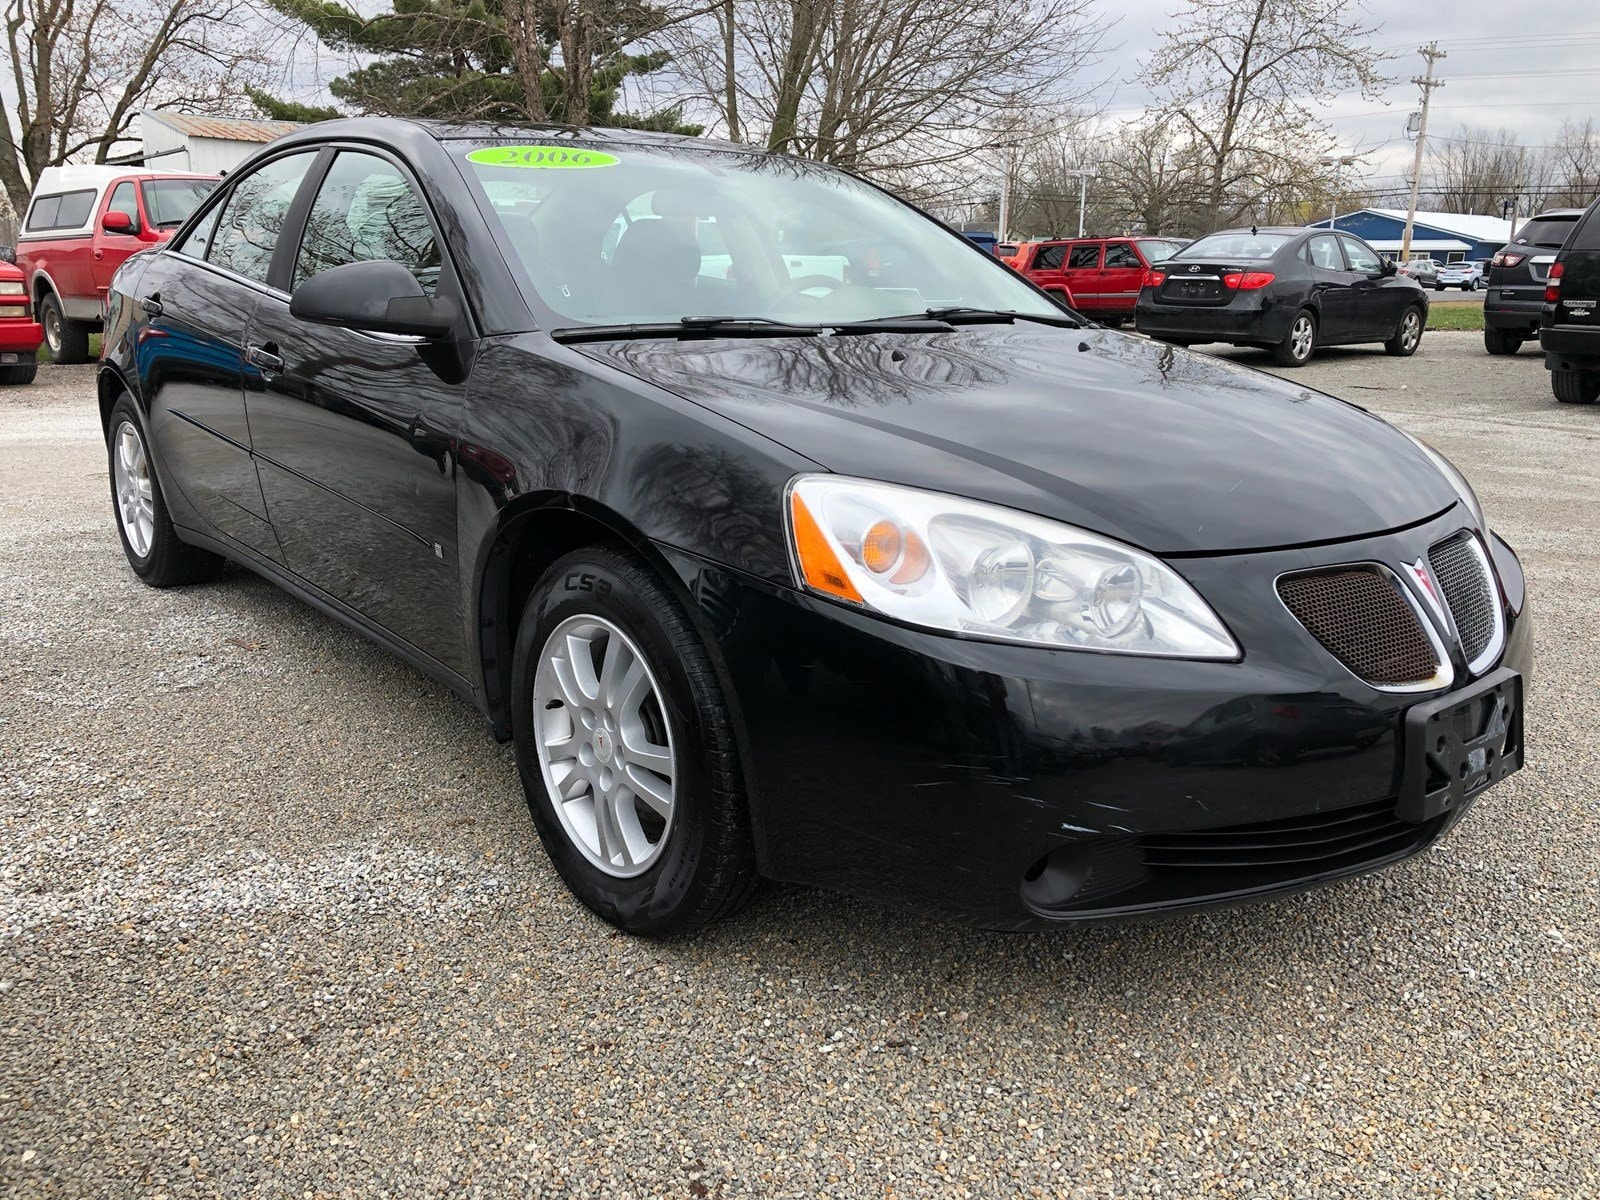 2006 Pontiac G6 6-Cyl Sedan